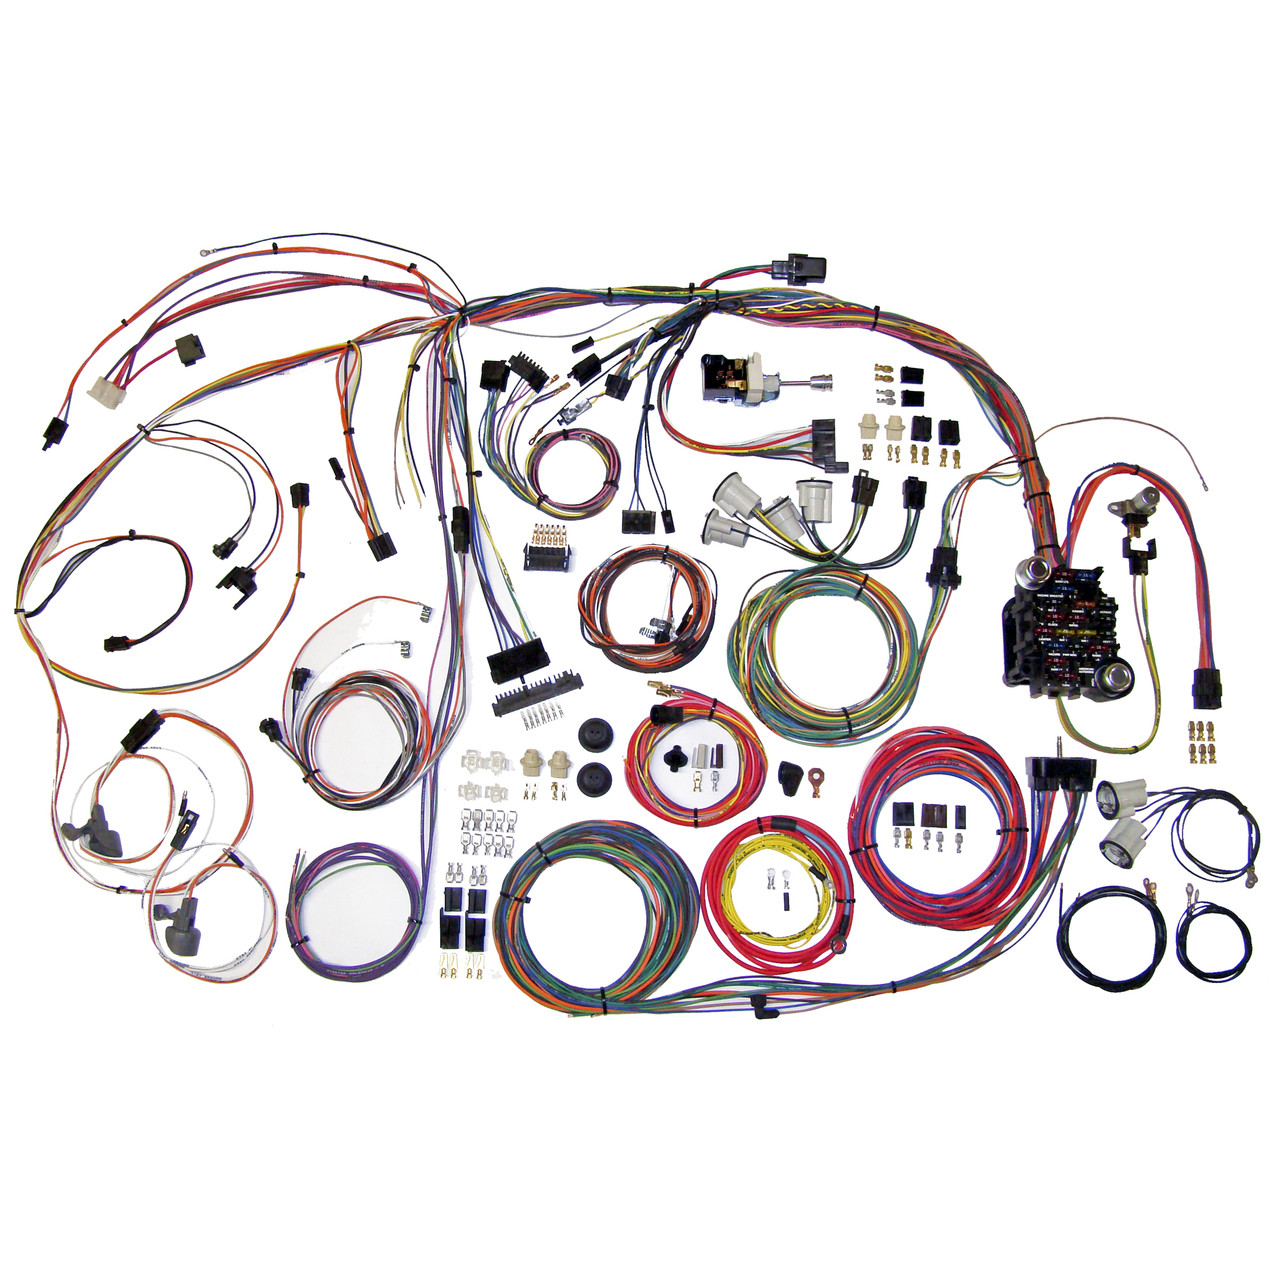 small resolution of american autowire 1970 1972 chevrolet chevelle el camino classic 19701972 chevelle complete wiring harness kit 19701972 chevelle